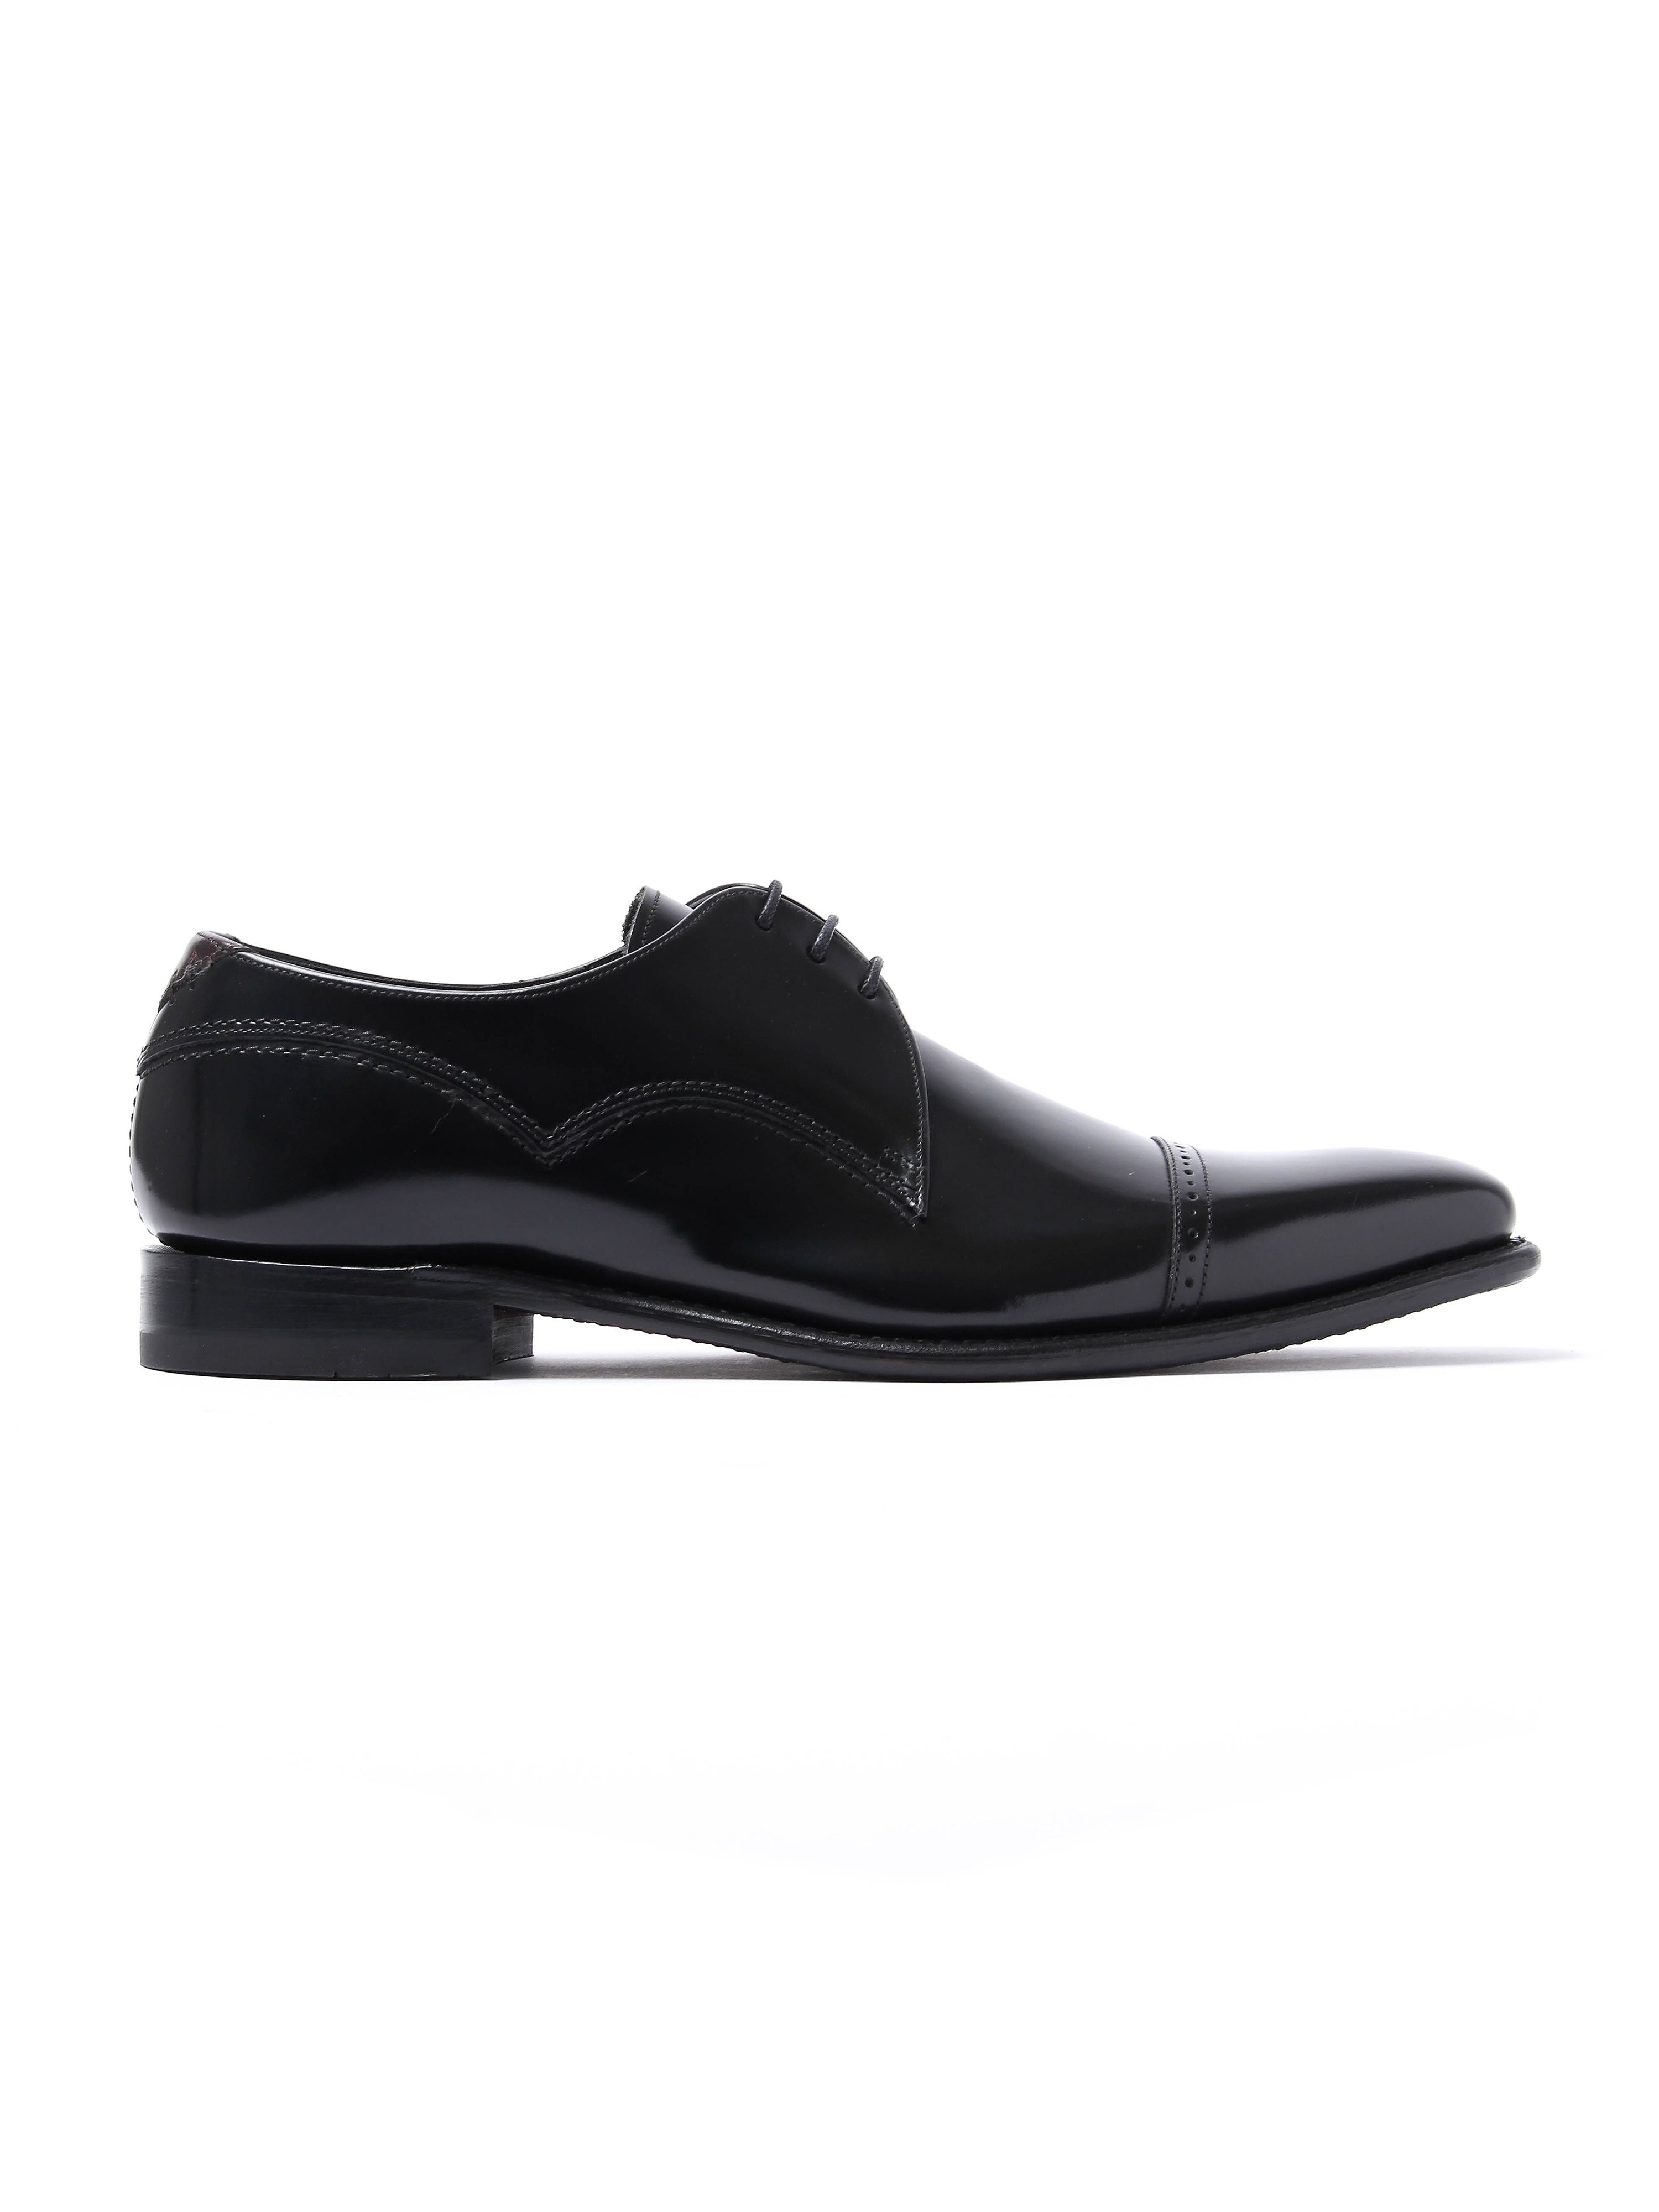 Barker Men's Carlson Patent Leather Cap-Toe Derby Shoes - Black